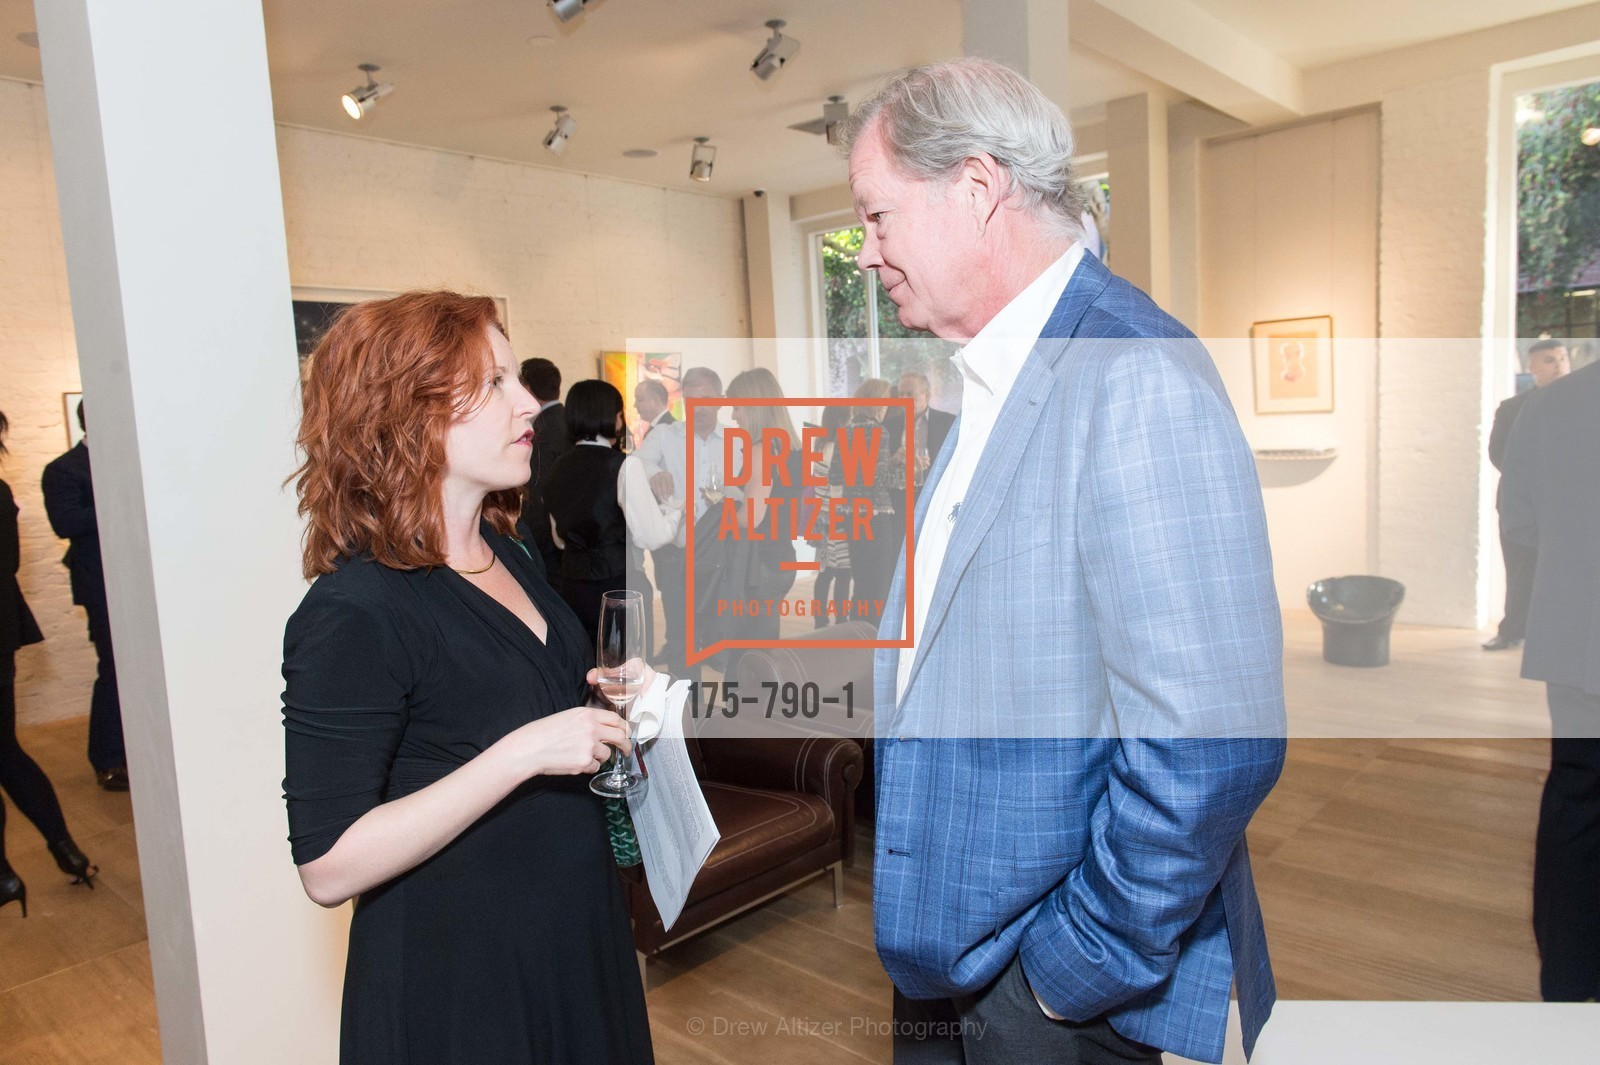 Brenda Jewett, George Jewett, Post War and Contemporary Preview at HEDGE GALLERY, US, April 16th, 2015,Drew Altizer, Drew Altizer Photography, full-service agency, private events, San Francisco photographer, photographer california